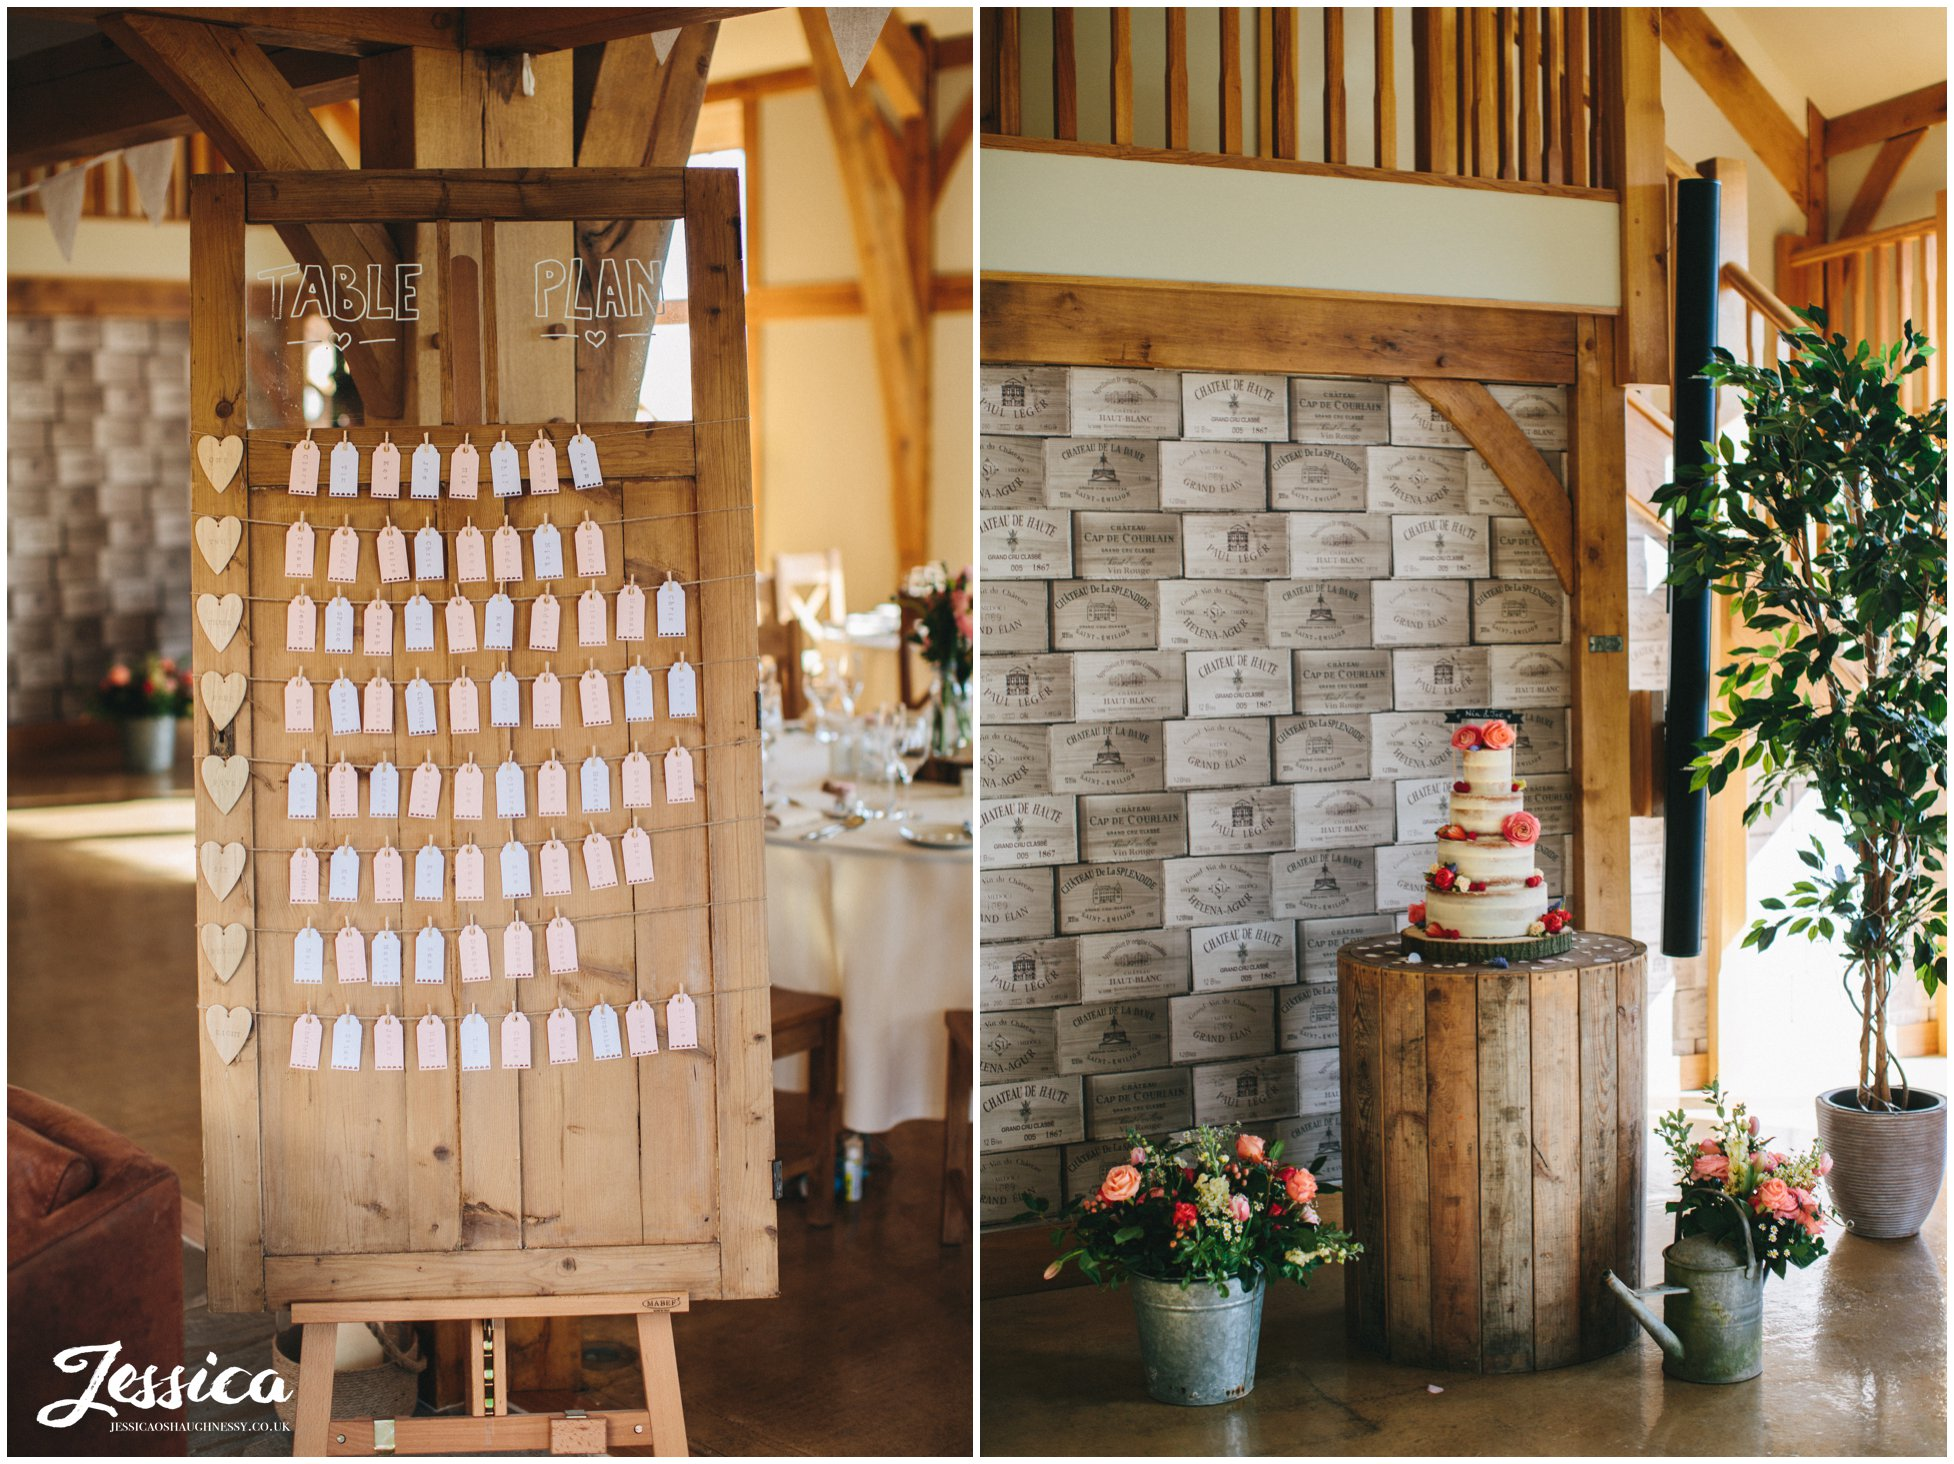 tower hill barns wedding - detail shot of table plan and cake